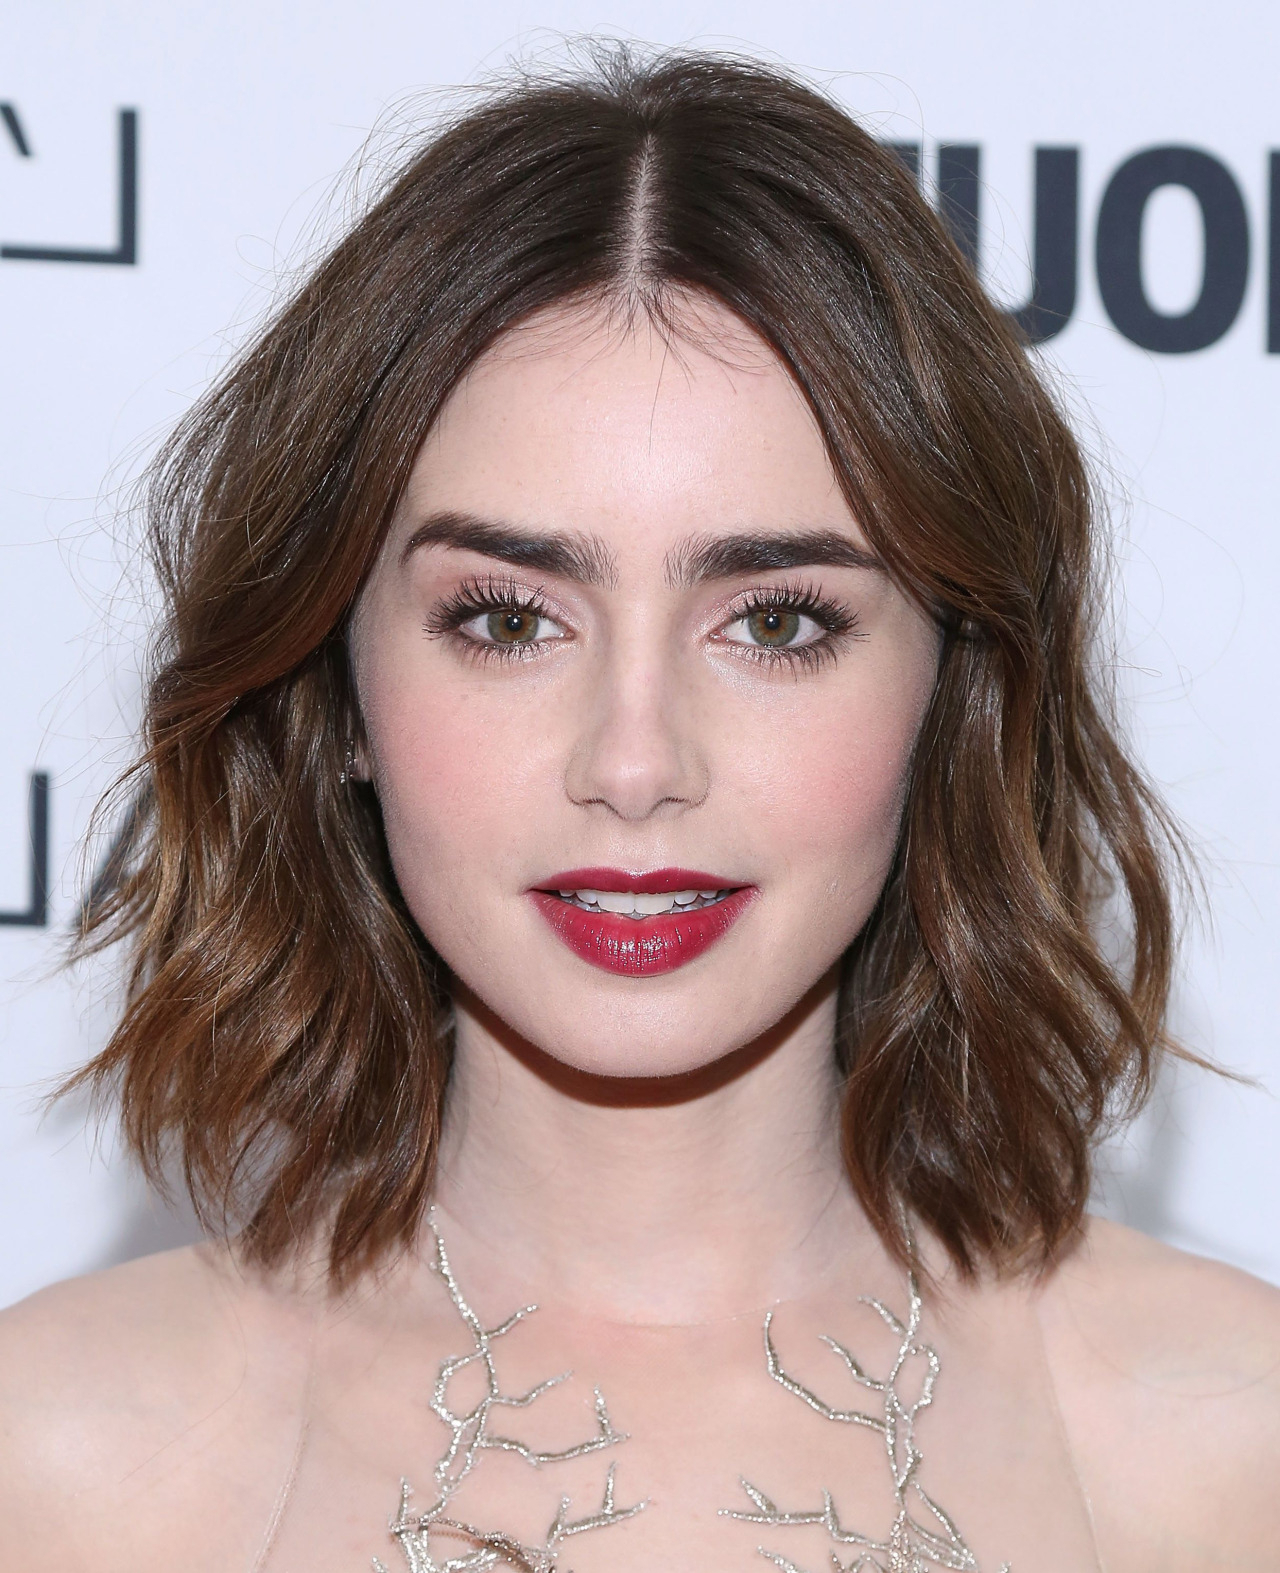 15 Of The Best Hairstyles For Medium Length Wavy Hair – The Skincare For Side Parted Messy Bob Hairstyles For Wavy Hair (View 17 of 25)